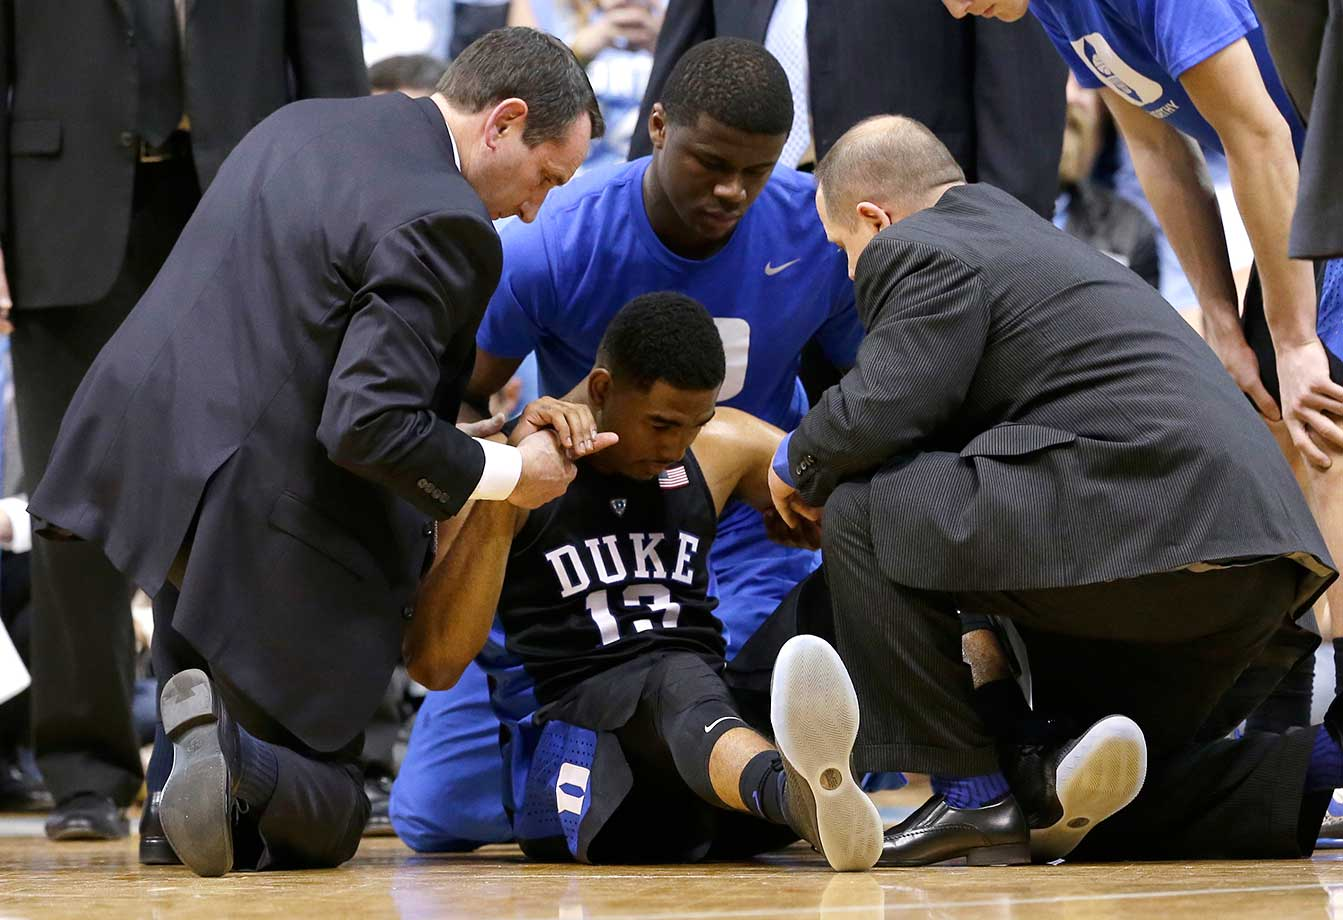 Duke head coach Mike Krzyzewski helps an injured Matt Jones, who sprained his ankle early against North Carolina.